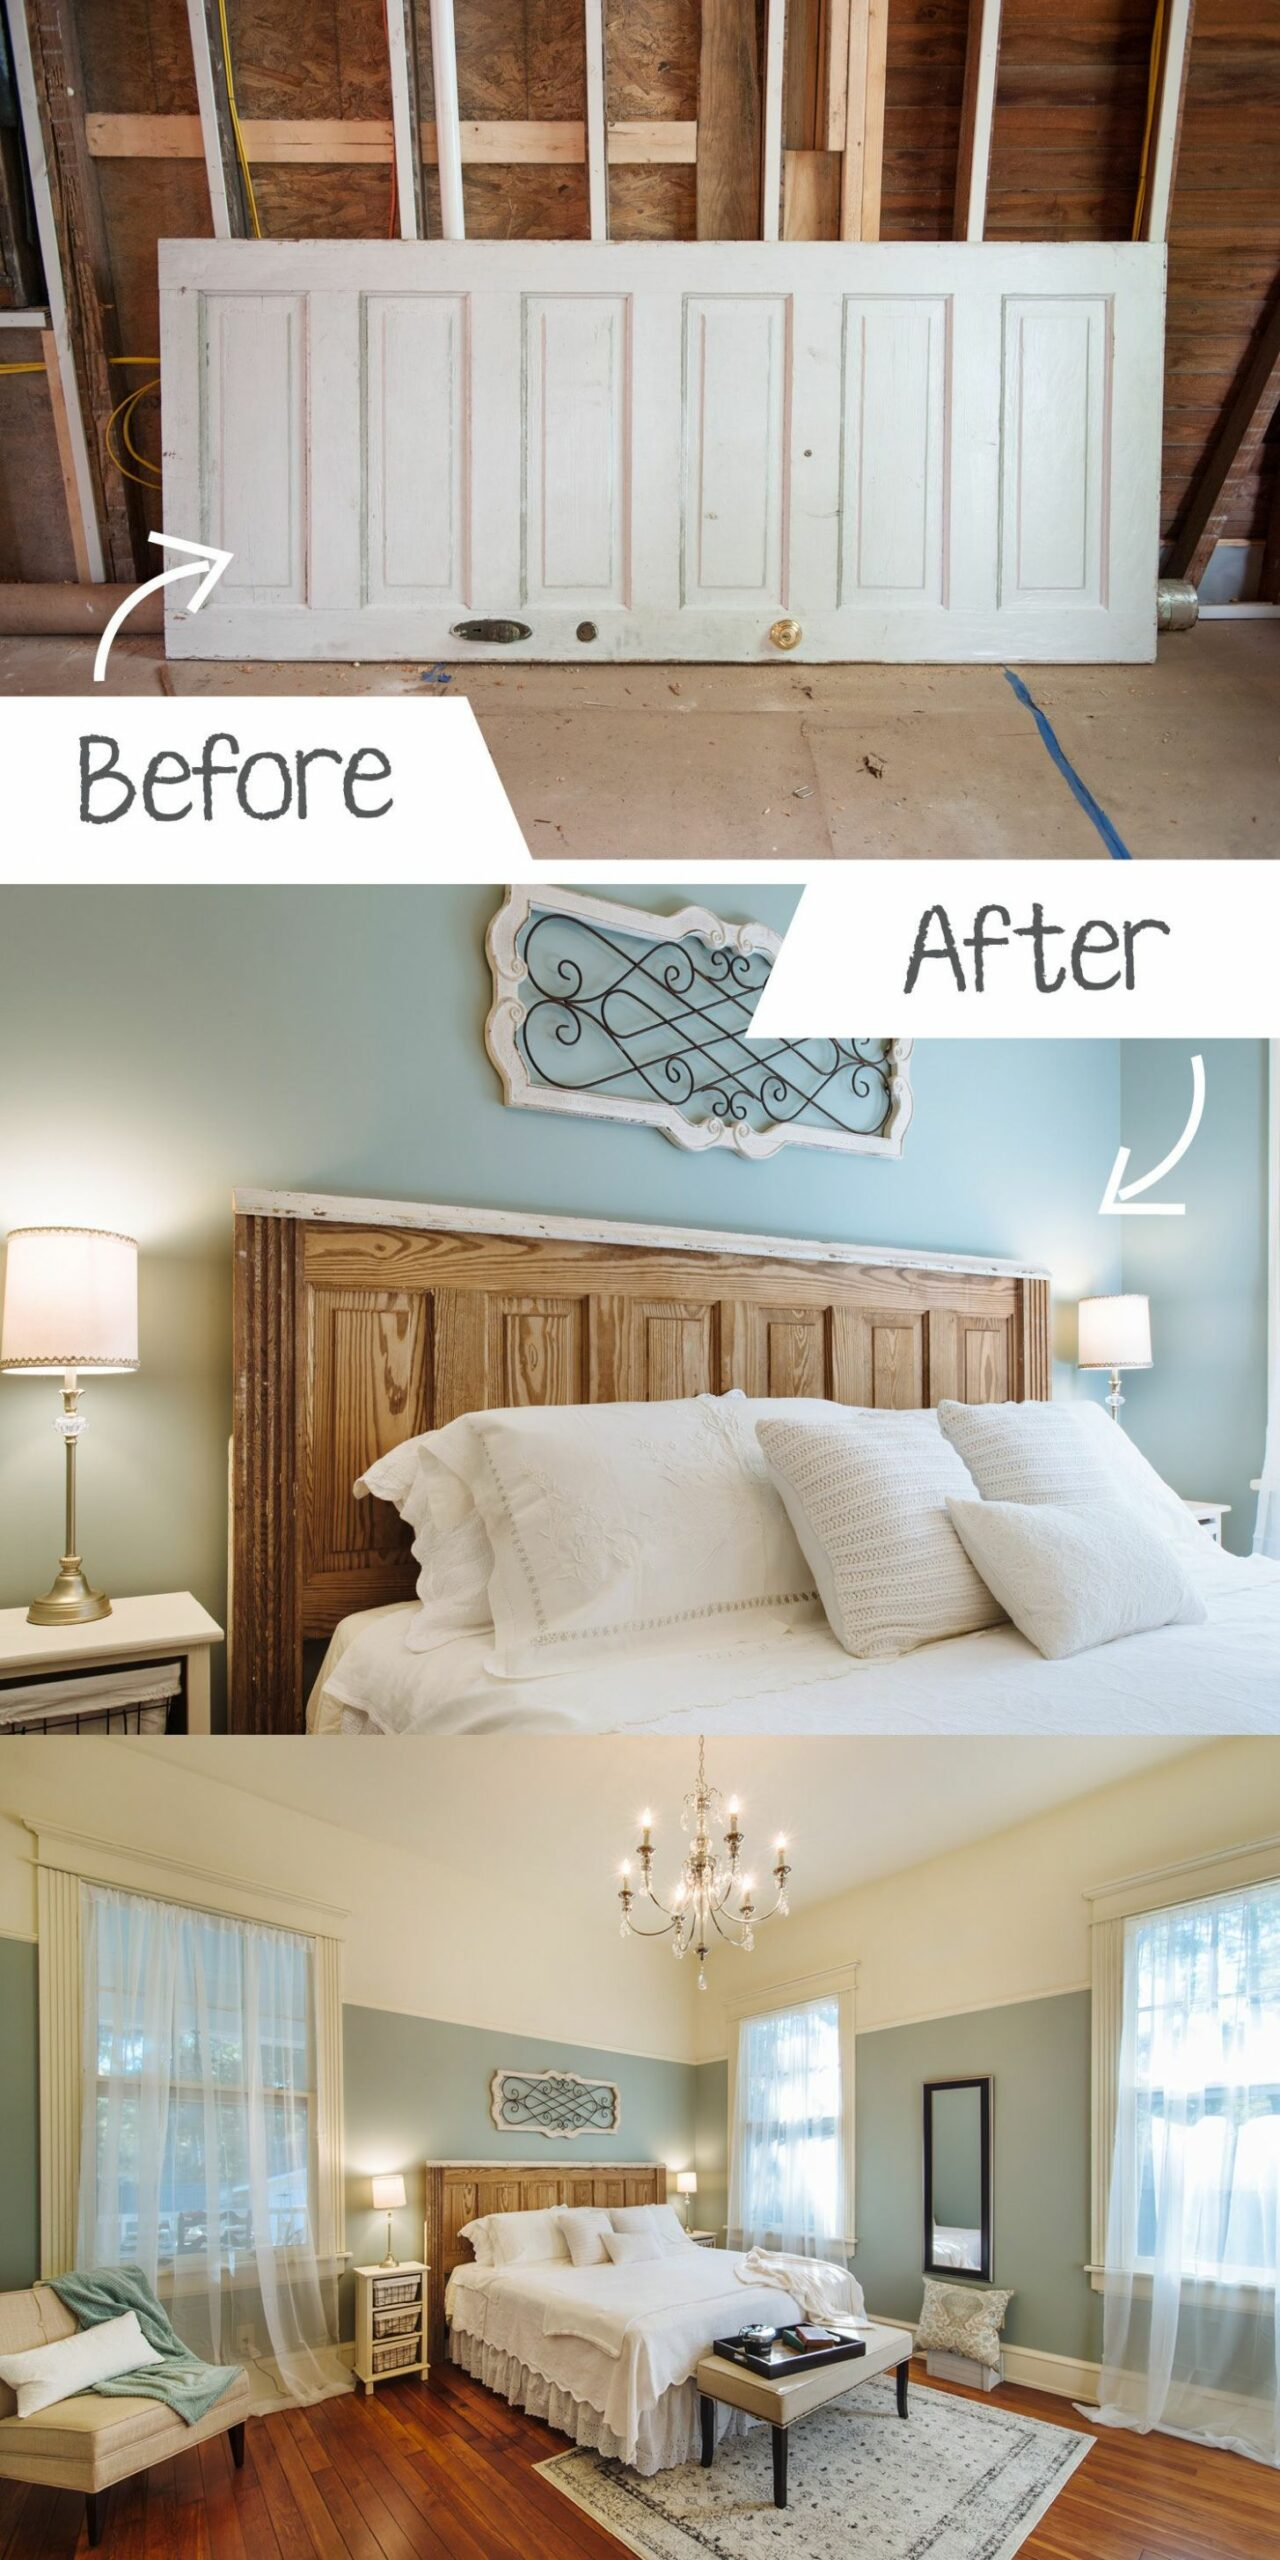 DIY Ideas for the Home! Turning an old door into a headboard! #DIY ...